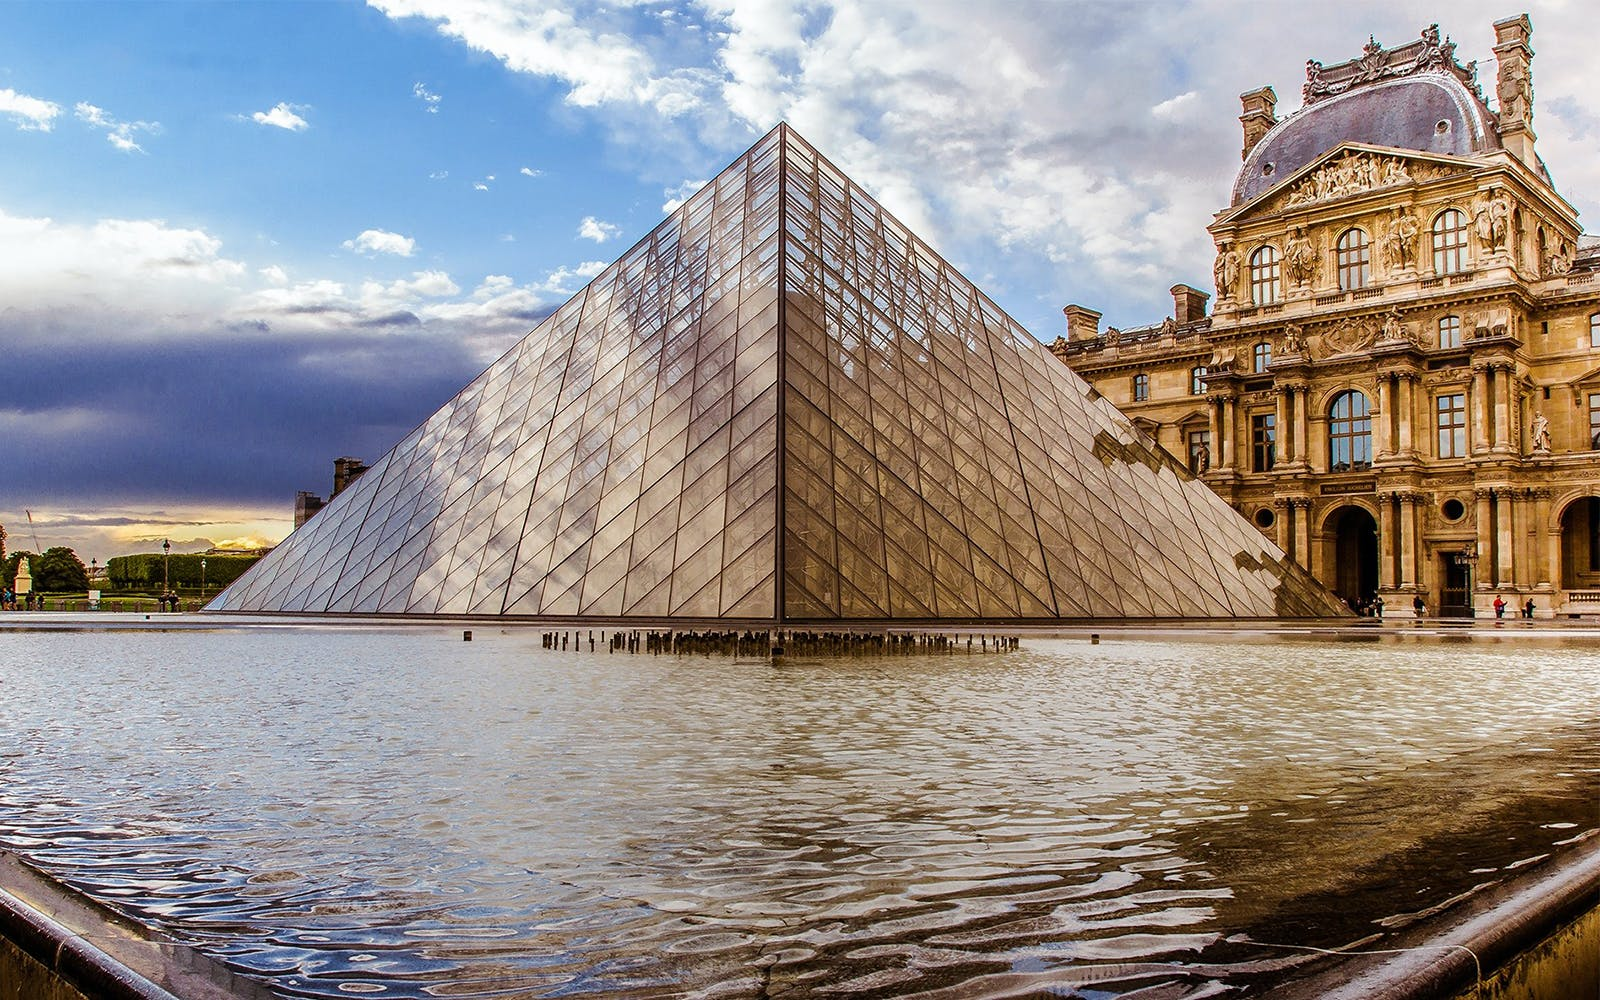 The Louvre Tours